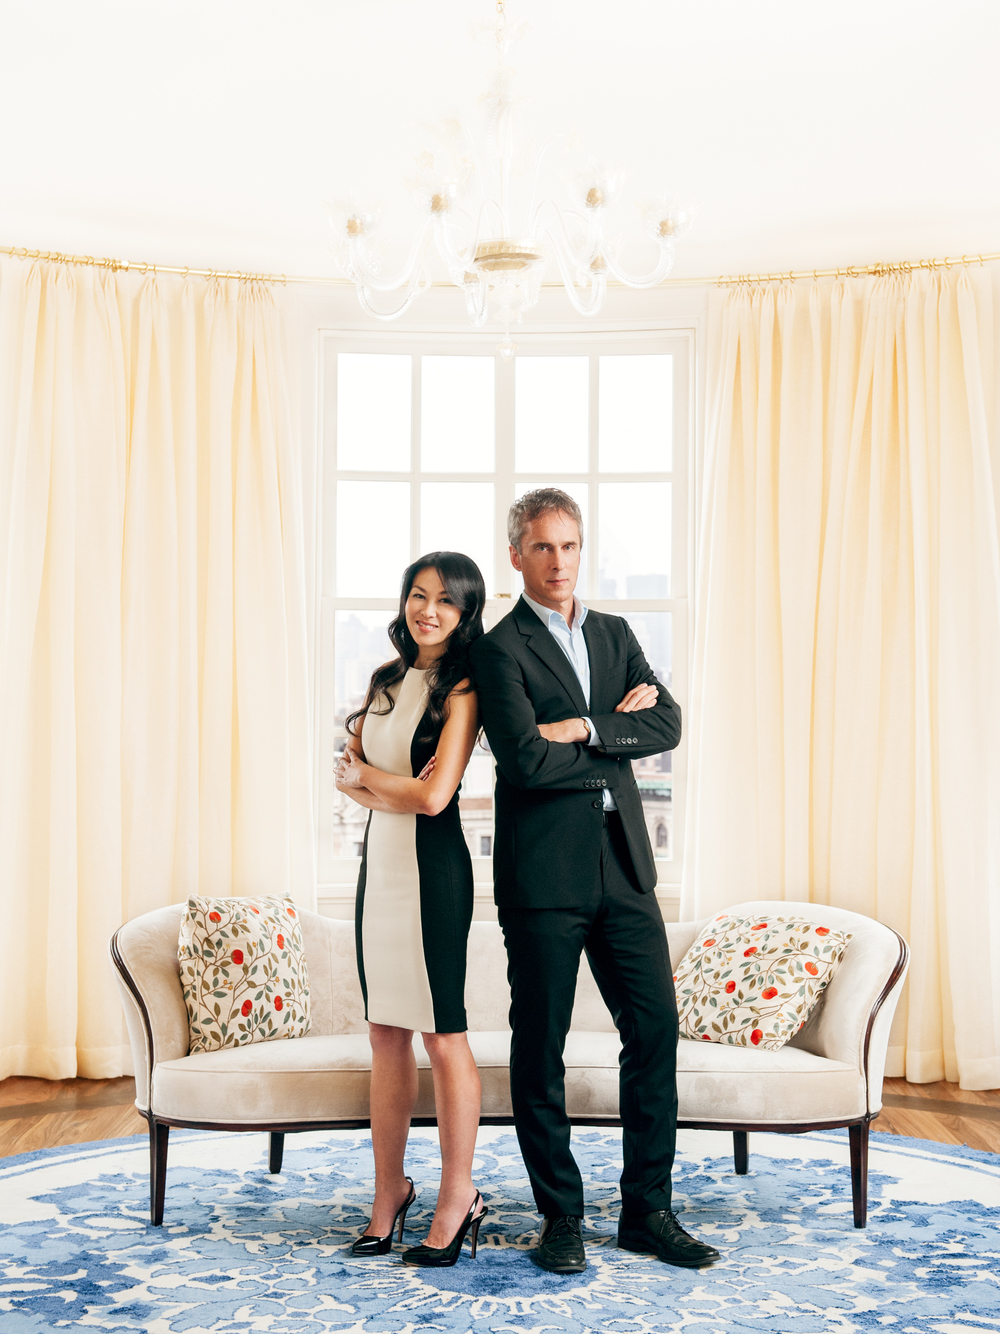 Amy Chua & Jed Rubenfeld, Authors of  The Triple Threat  and  Battle Hymn of the Tiger Mother    Red Magazine